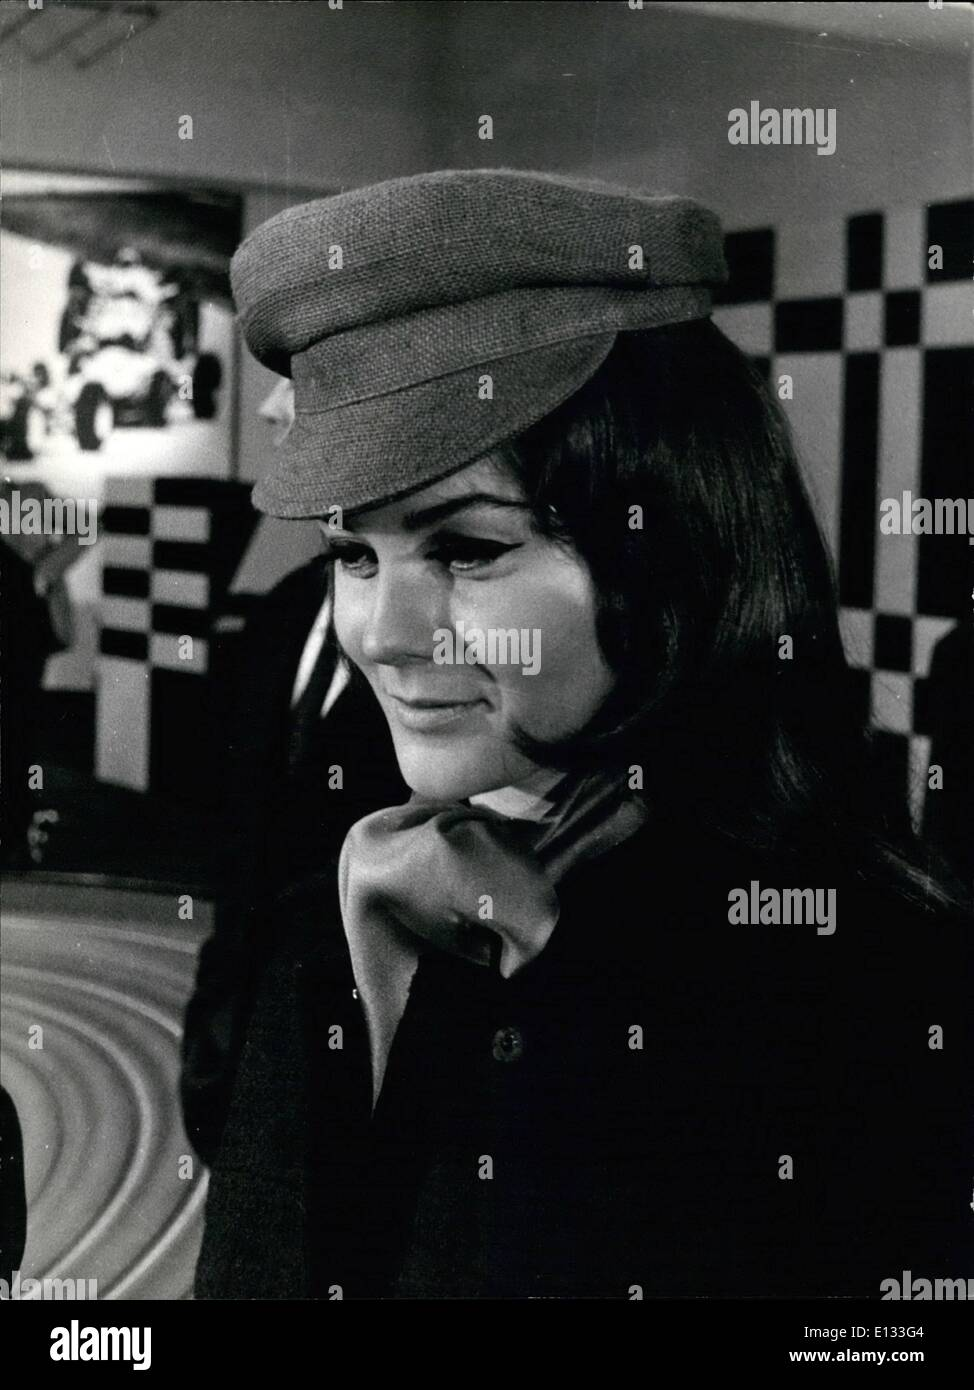 Feb. 26, 2012 - Rome, February 1967. Beautiful Hollywood actress Ann Margret, is now in Rome for a film titled The Tiger , co-starring Vittorio Gassman, and directed by Dino Risi. Ann Margret was once a rumoured girlfriend of Eddie Fisher. More recently, she had been linked with Elvis Presley. OPS: Ann Margret turns The Tiger inside the racing carà - Stock Image